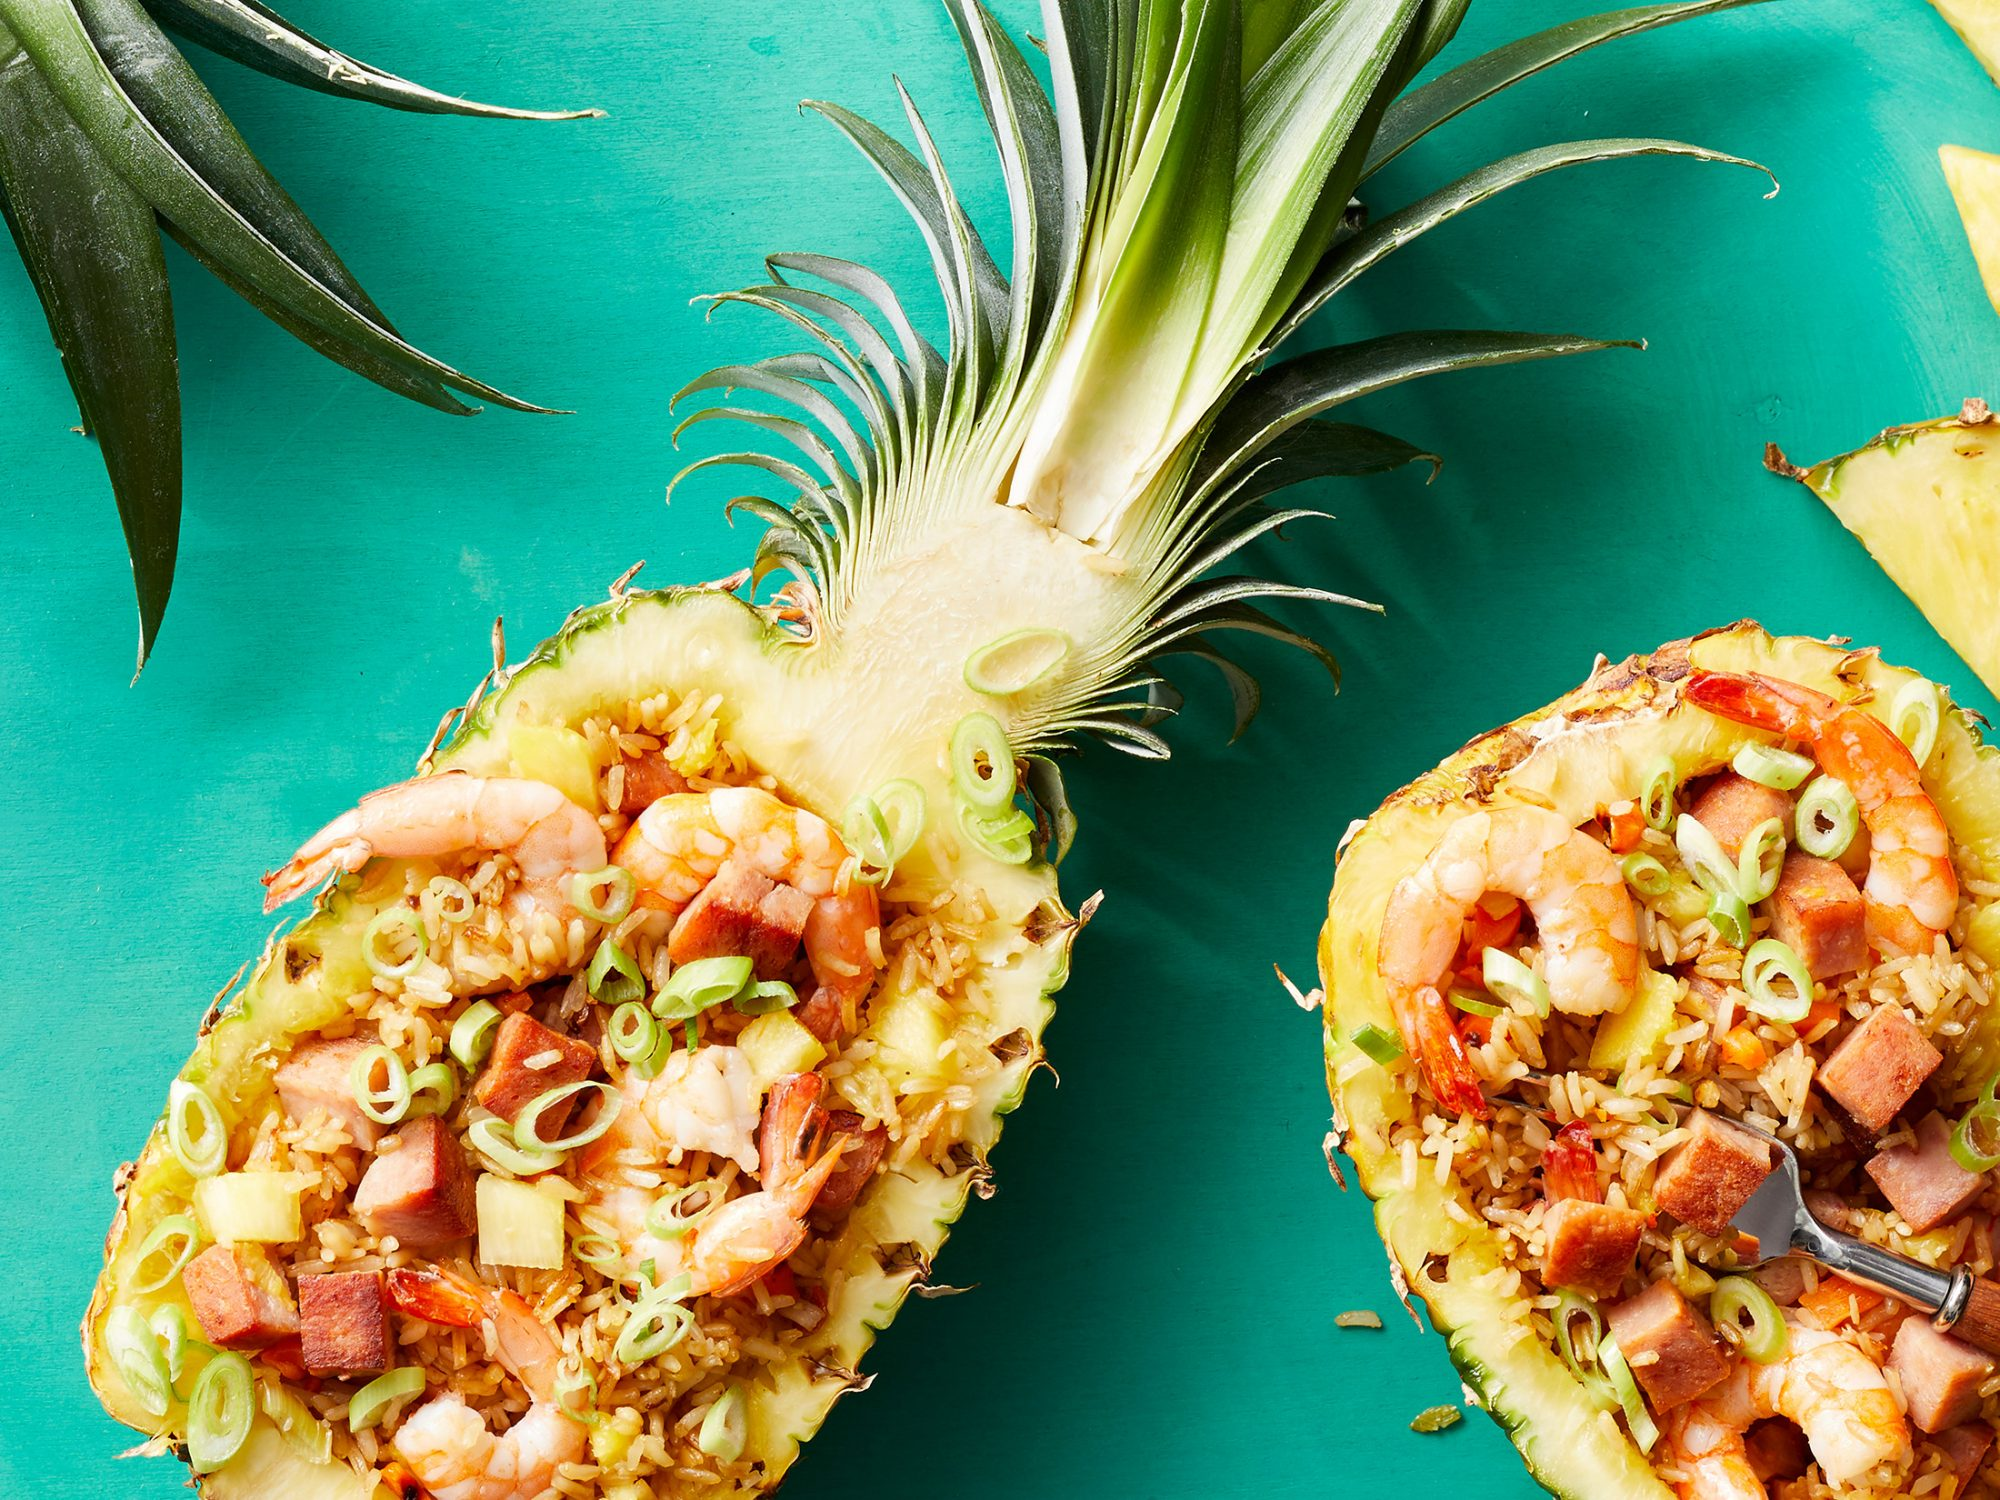 Pineapple Fried Rice with Spam, Shrimp, and Cashews